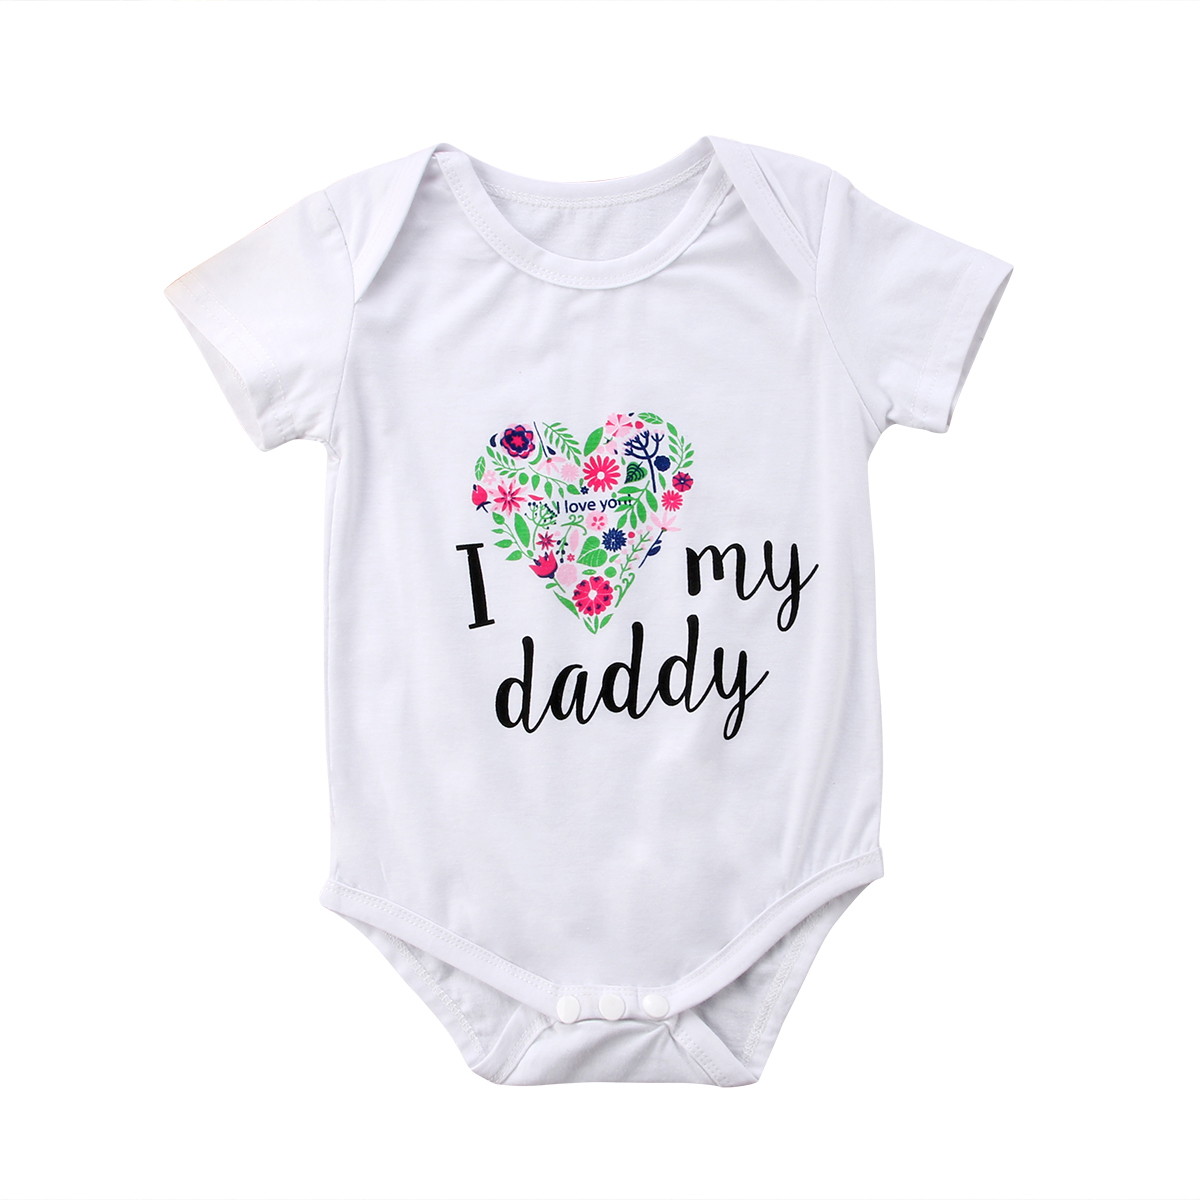 Toddler Boy Girl Kid Baby Short Sleeve Heart-shaped Floral Letter Romper Jumpsuit Outfit One-piece 0-24M